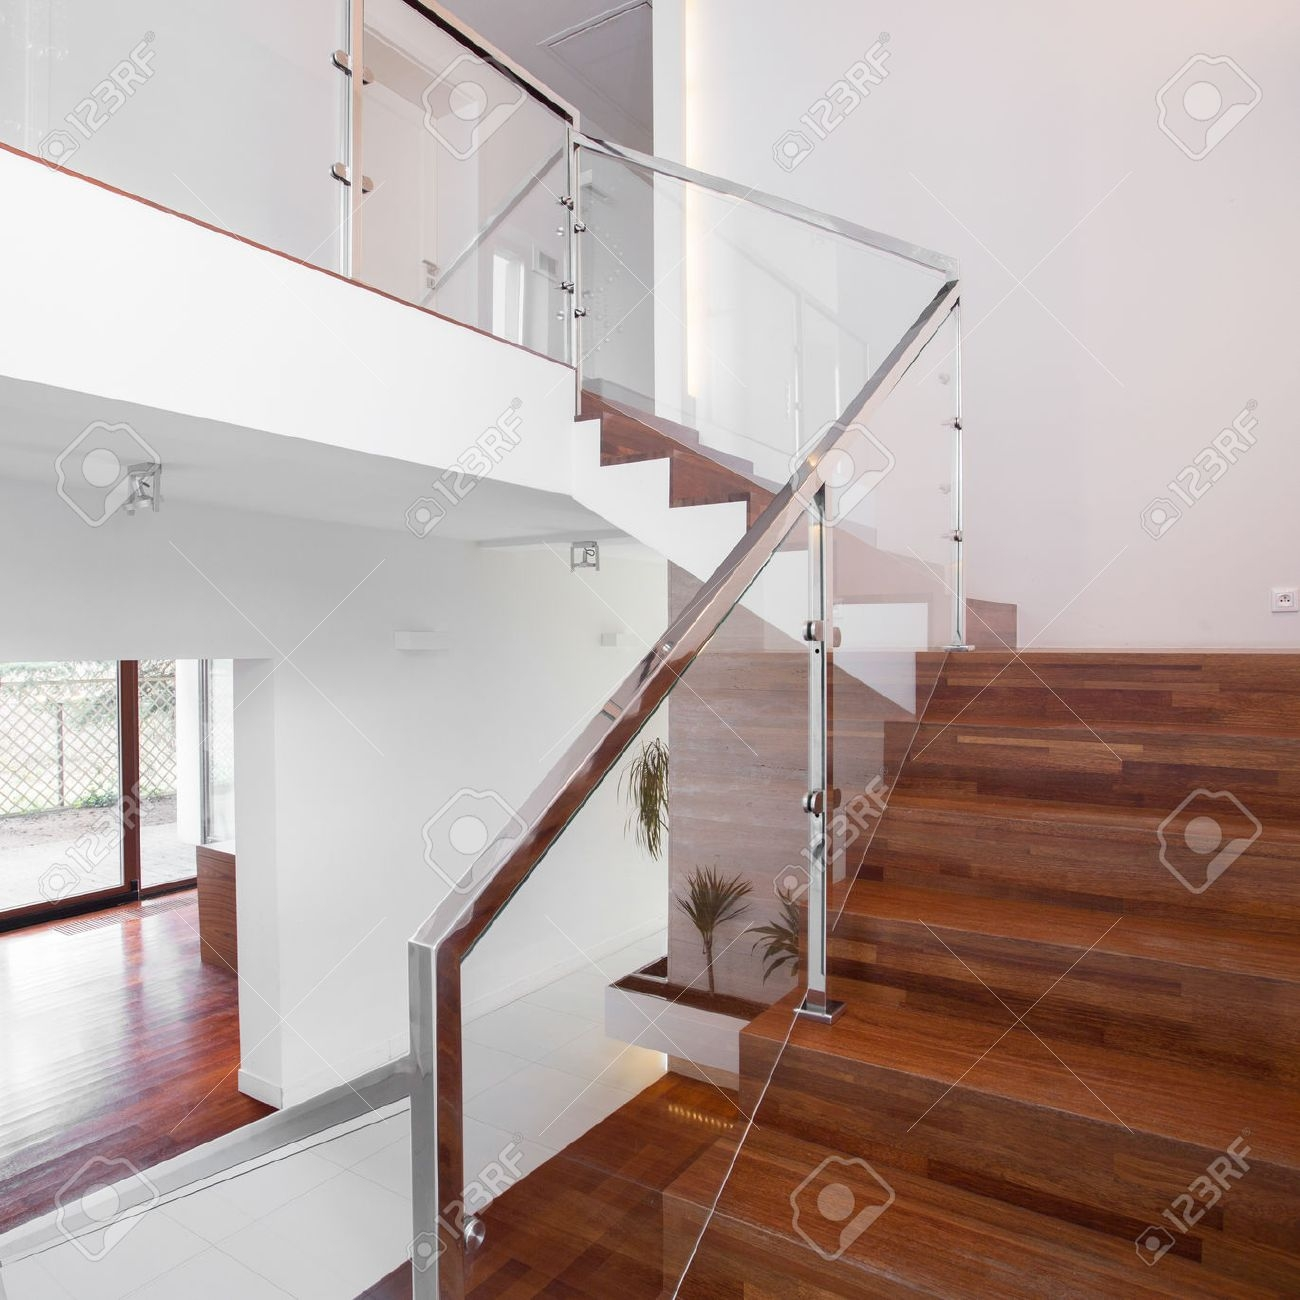 Image Of Solid Wooden Stairs With Elegant Glass Balustrade Stock   Glass Handrails For Stairs   Balustrading   Custom Glass   External   Frameless   Fully Glass